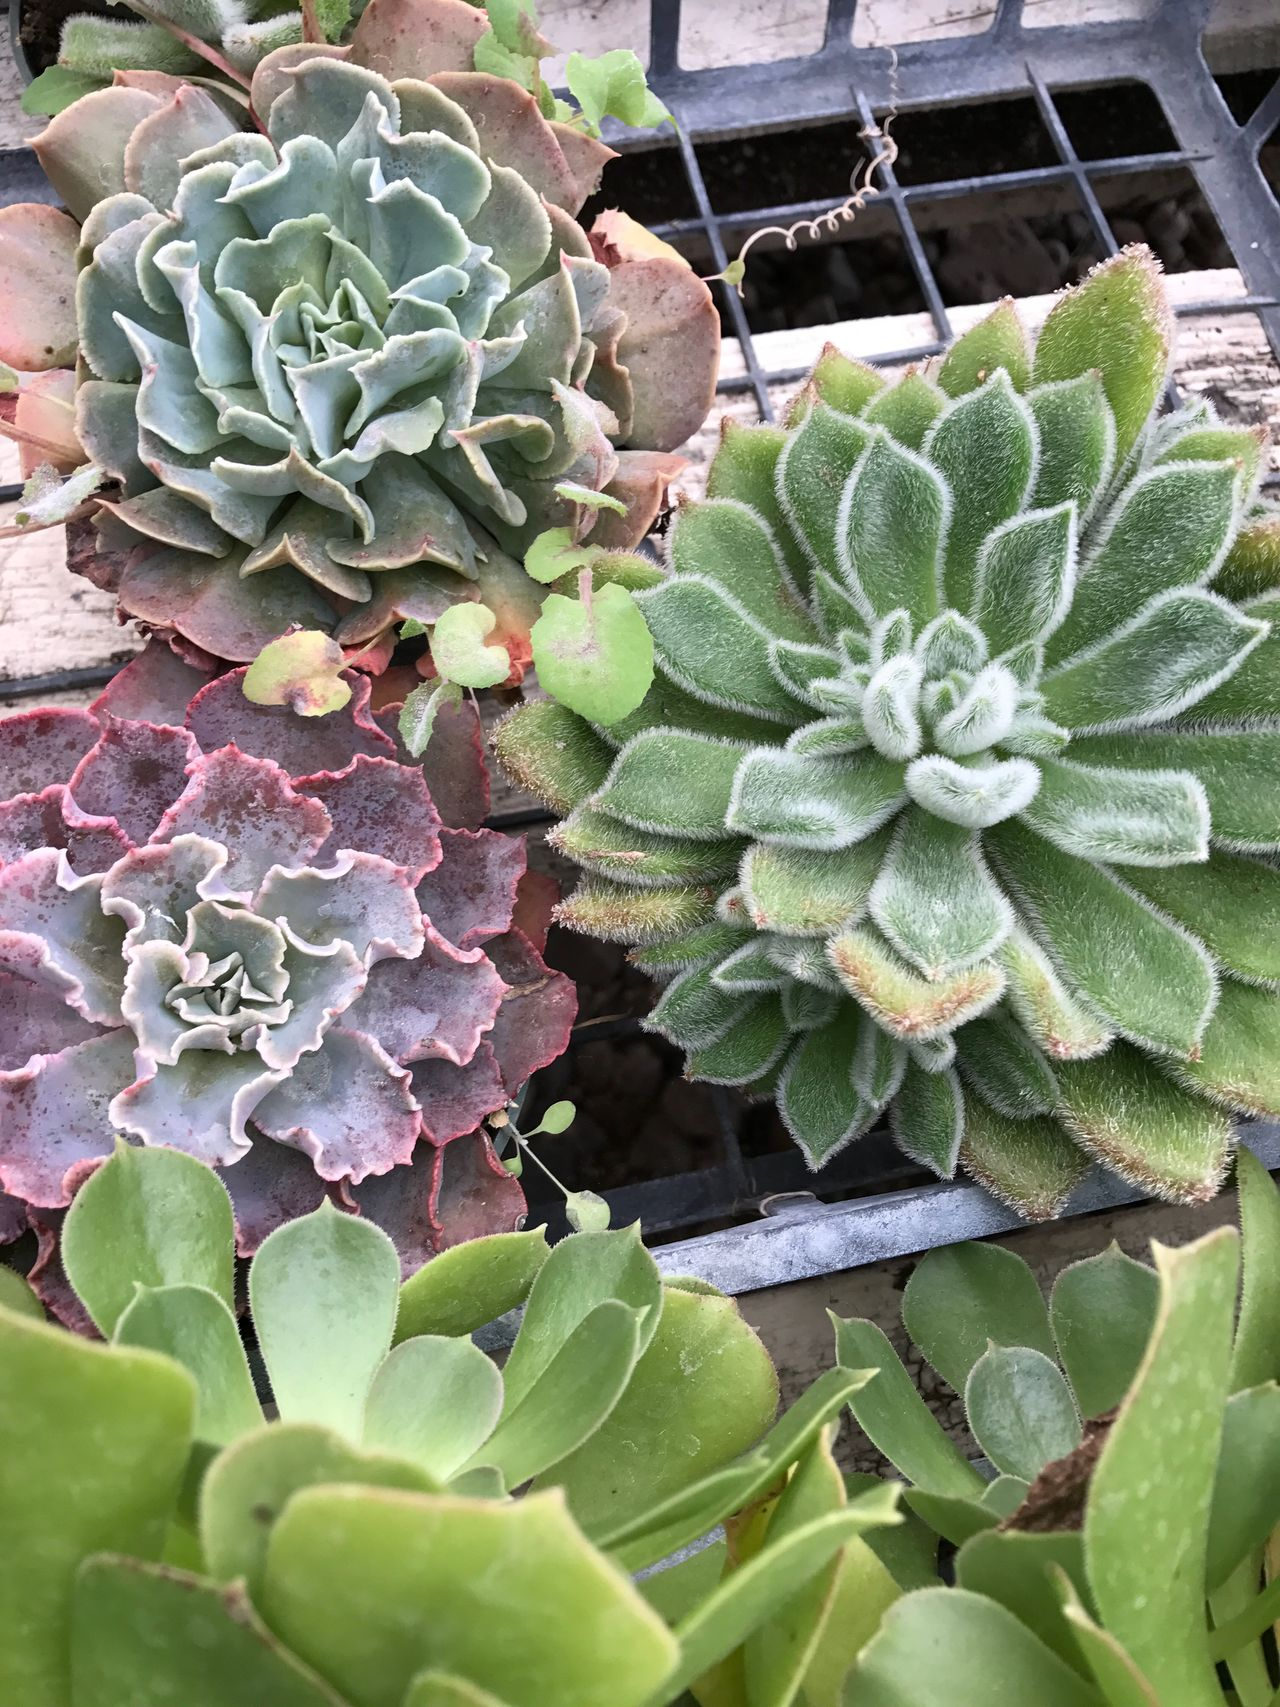 Echeveria Colorful Varieties Tranquility Hill Farm Clifton Springs Ny In The Greenhouse